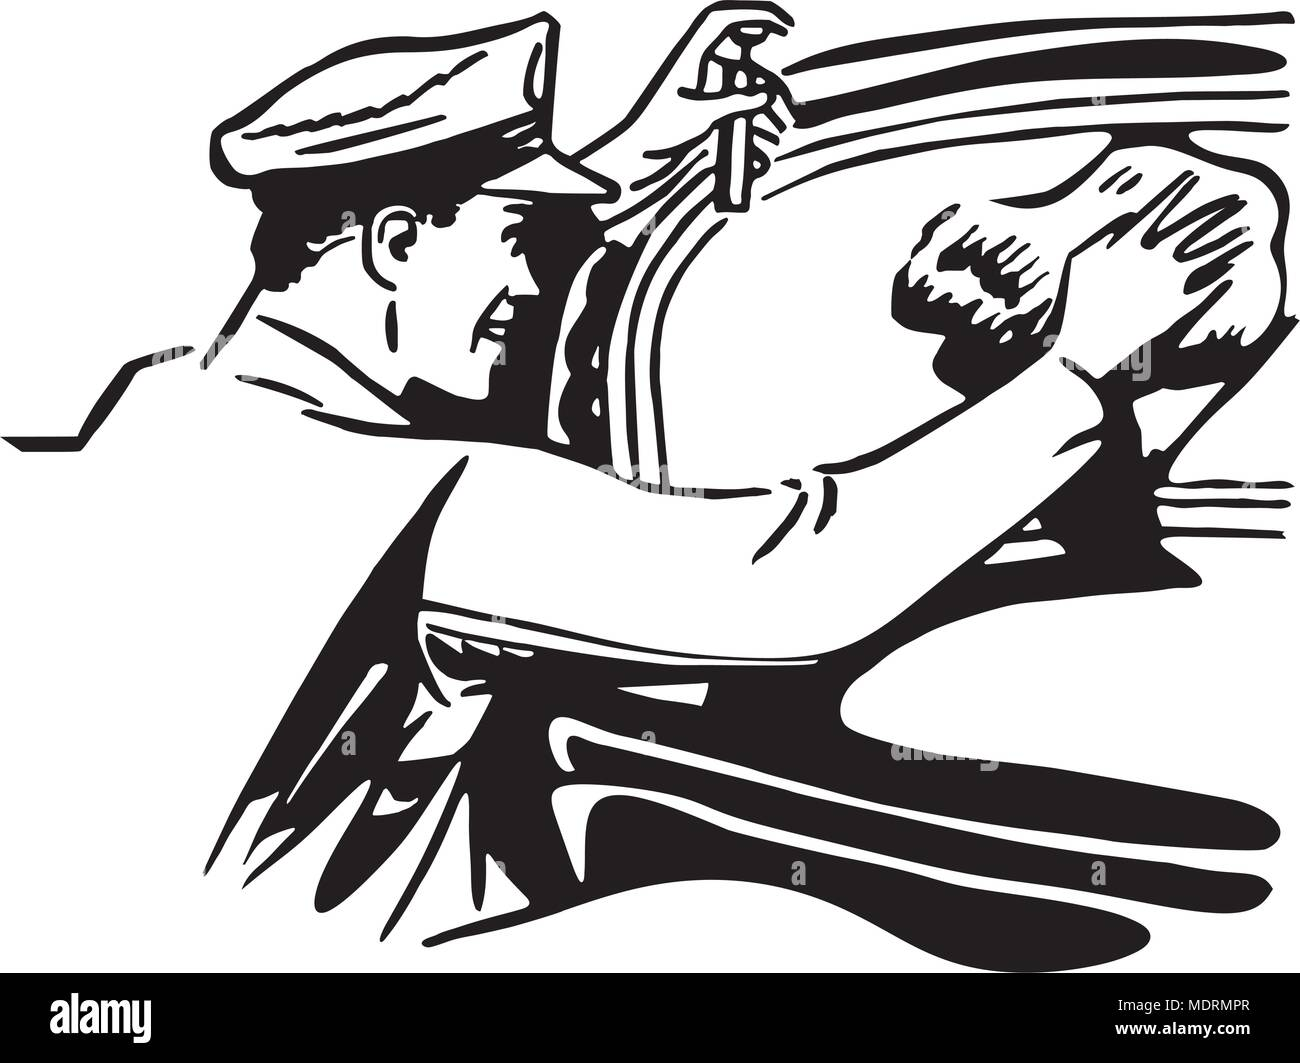 Cleaning Windshield - Retro Clipart Illustration - Stock Vector